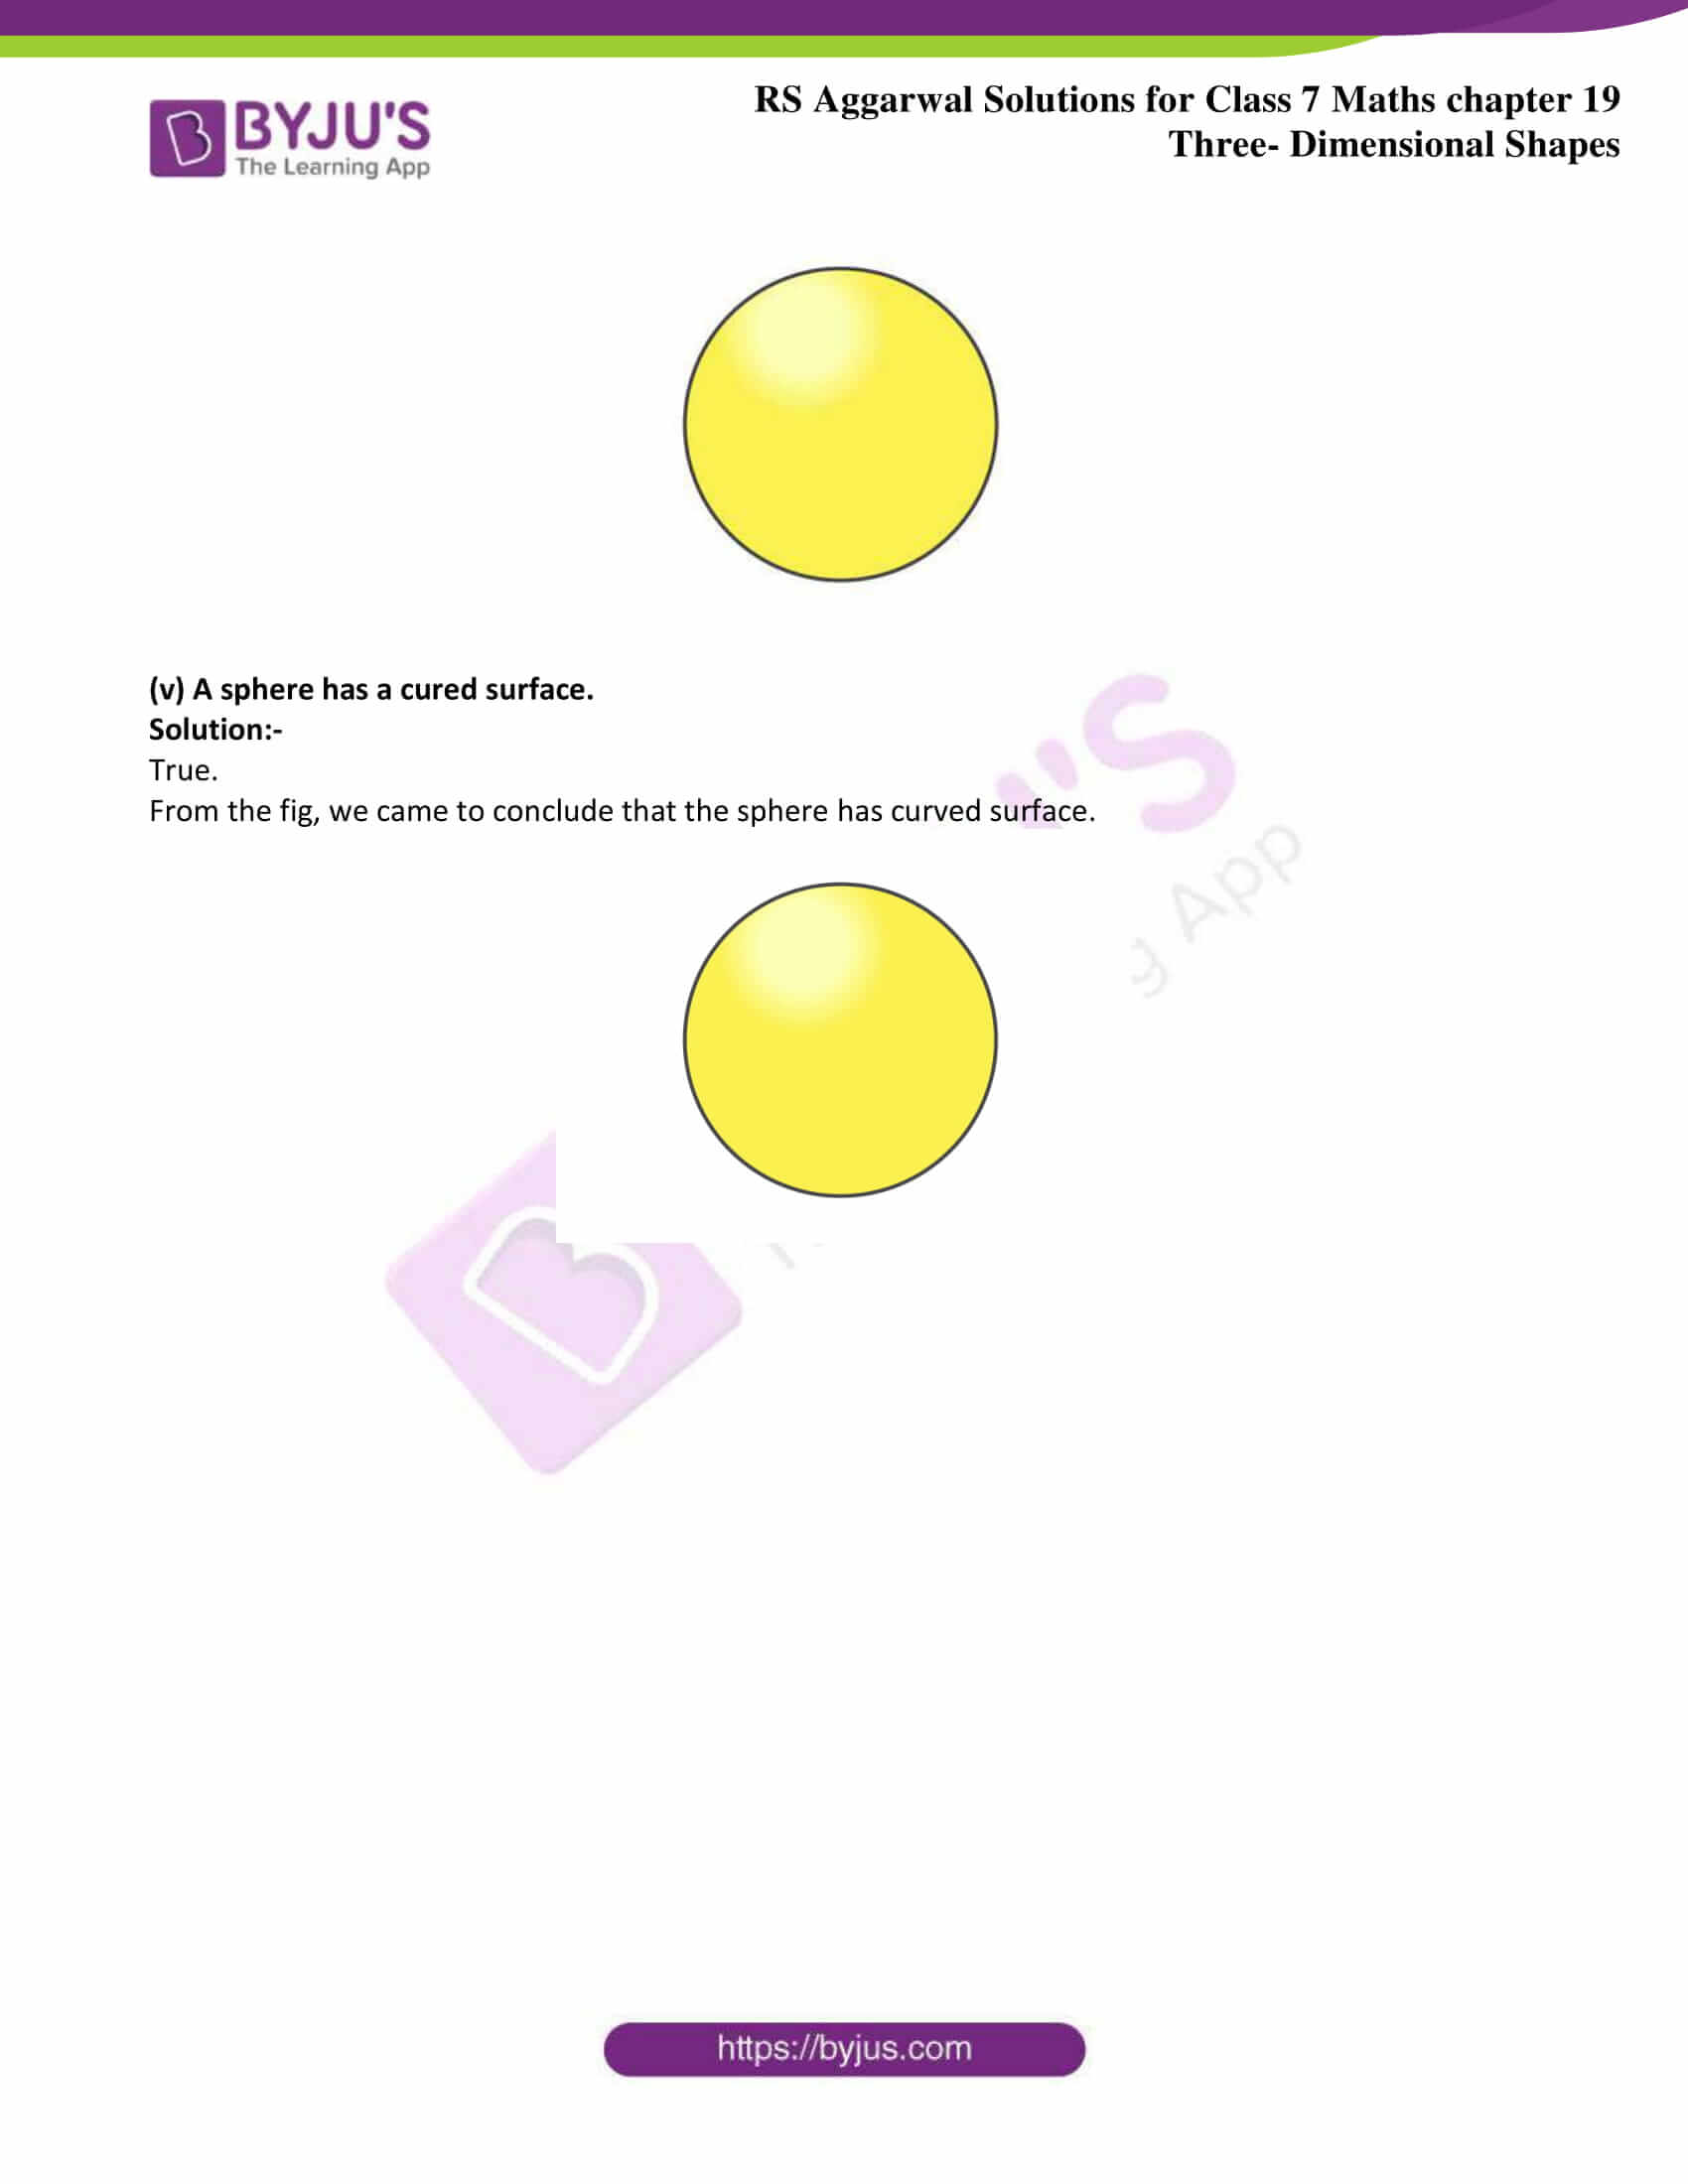 rs aggarwal solution class 7 maths chapter 19